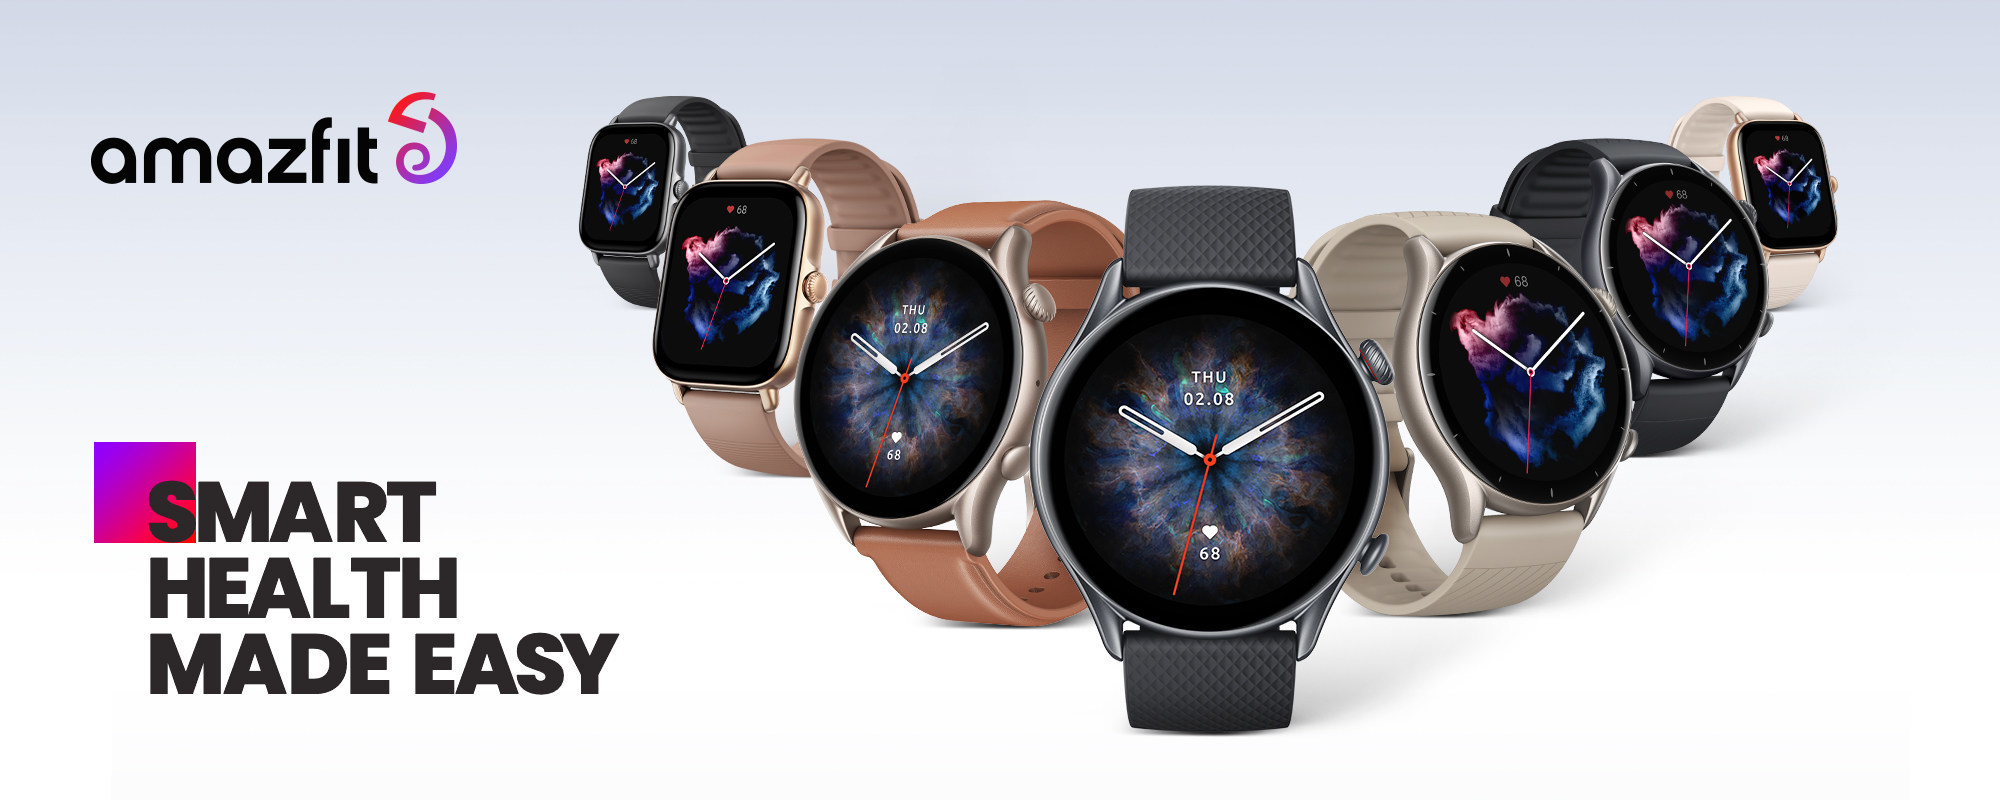 Amazfit GTR 3 and GTS 3 Series Smartwatches Launch